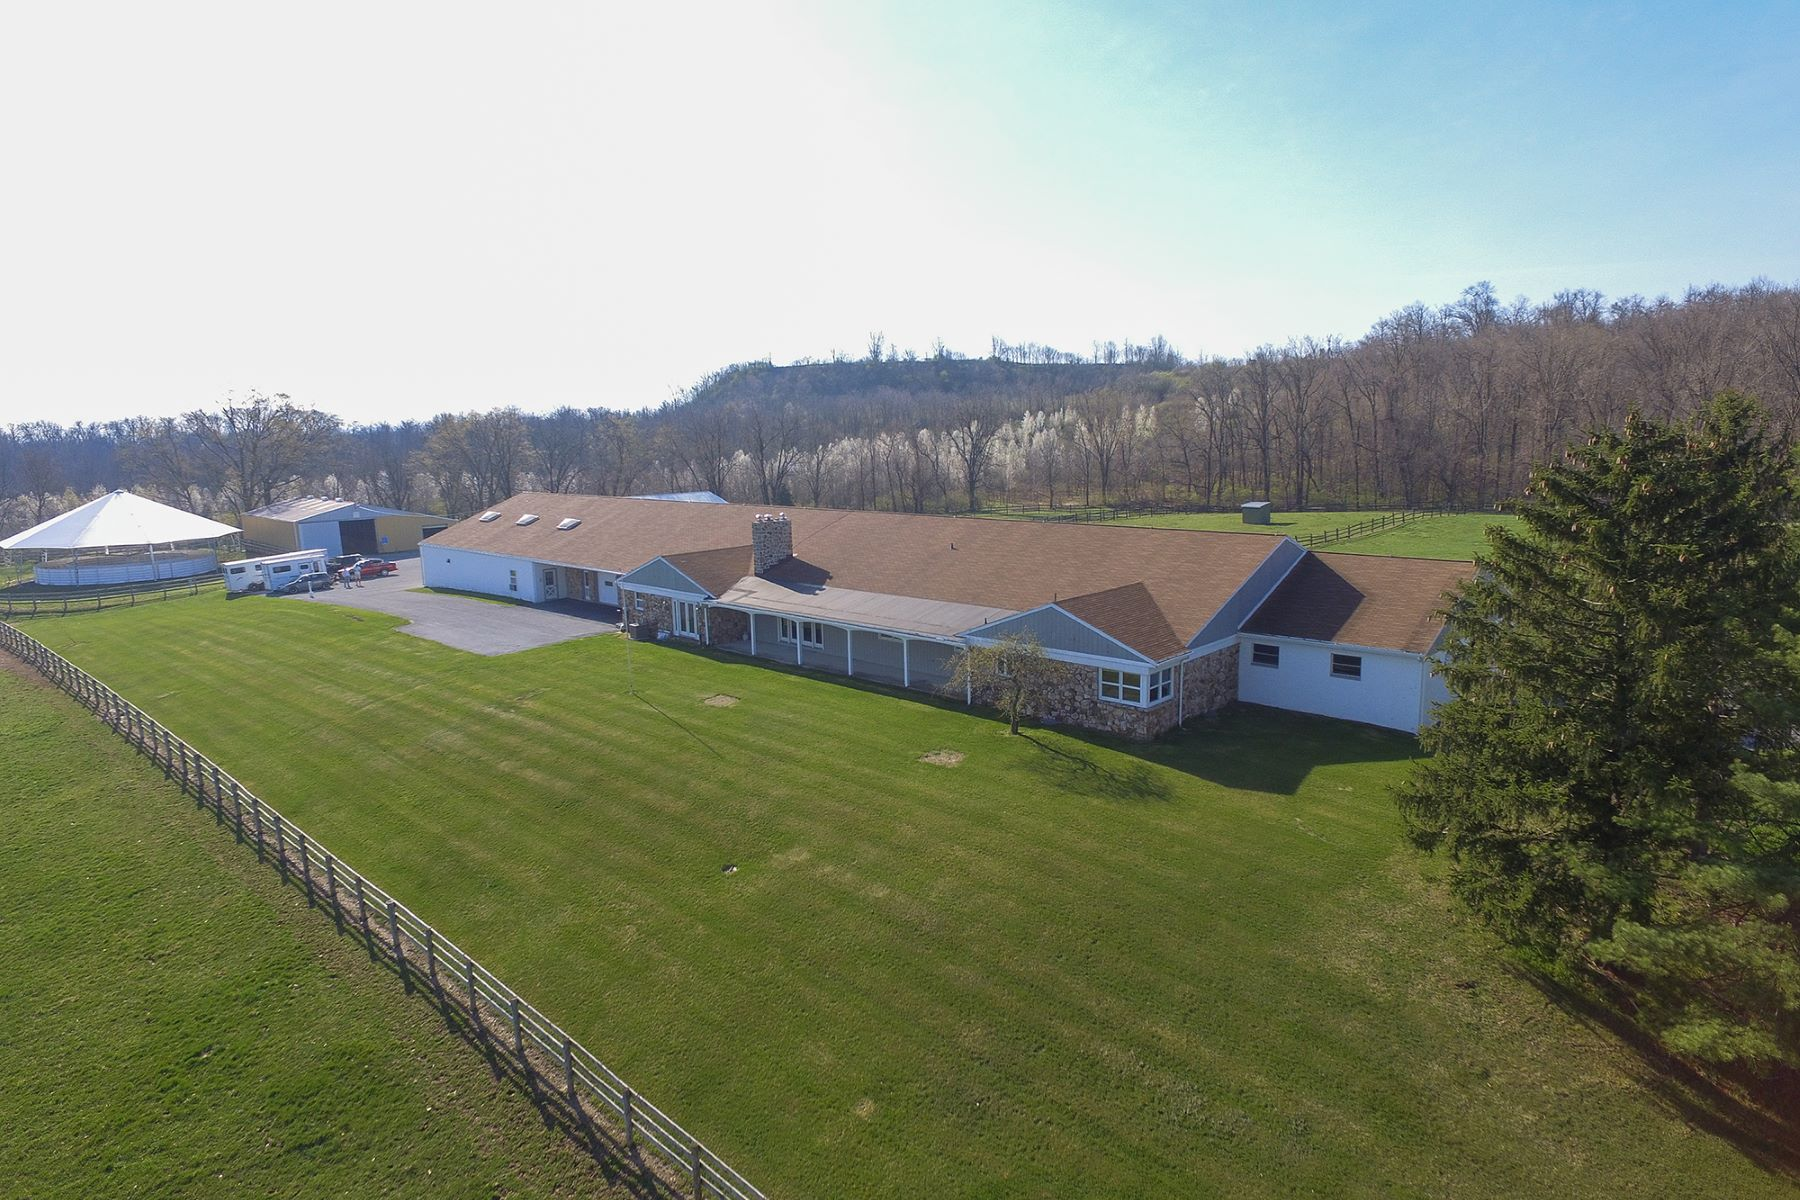 Single Family Home for Sale at 2 Carson Lane Annville, Pennsylvania 17003 United States